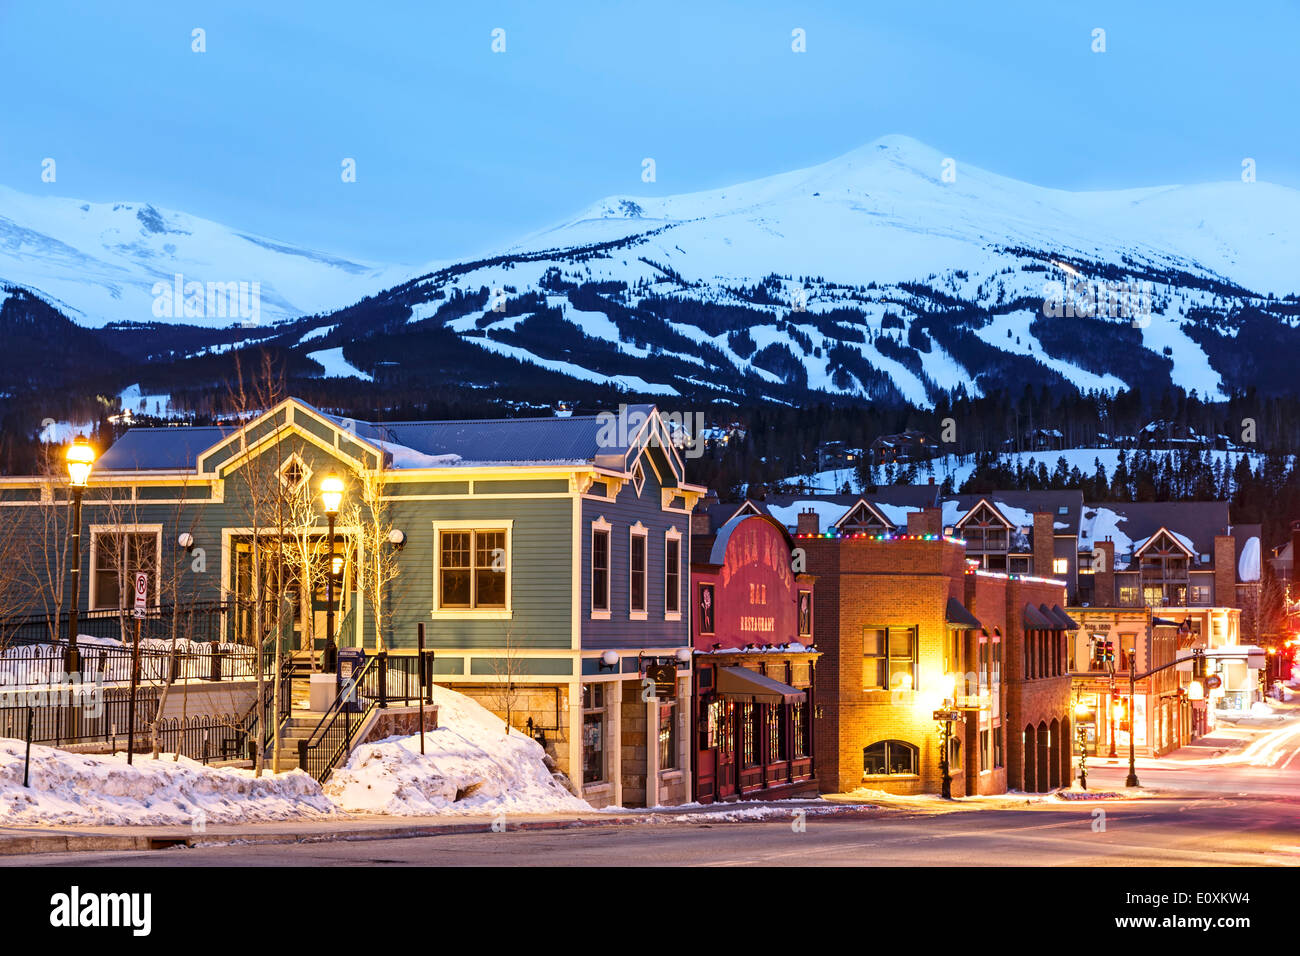 Snow-covered Peak 8, ski area and Downtown Breckenridge, Colorado USA - Stock Image